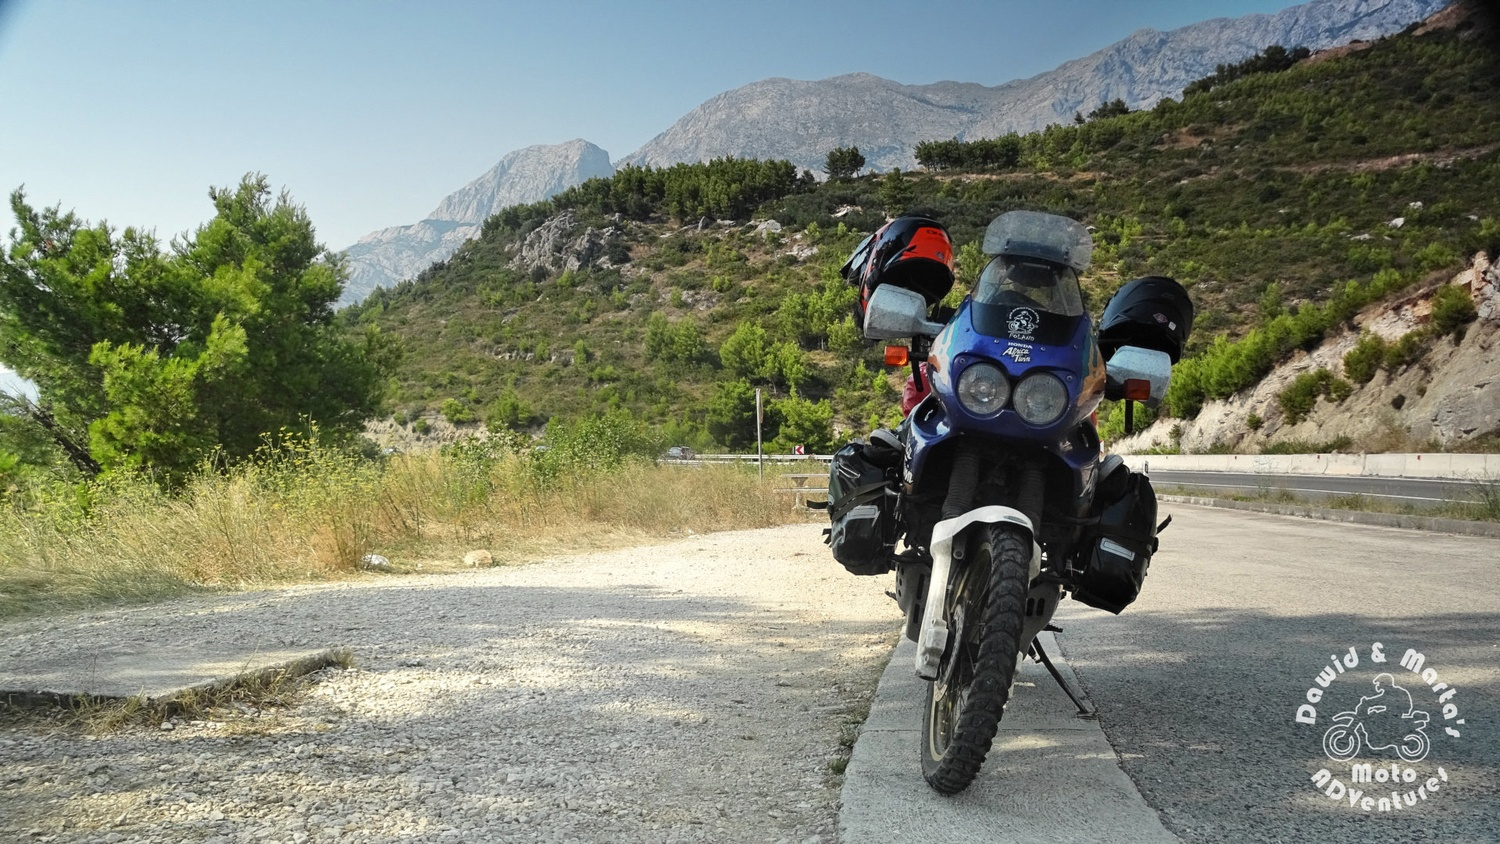 Africa Twin on the backround of the Biokovo mountains